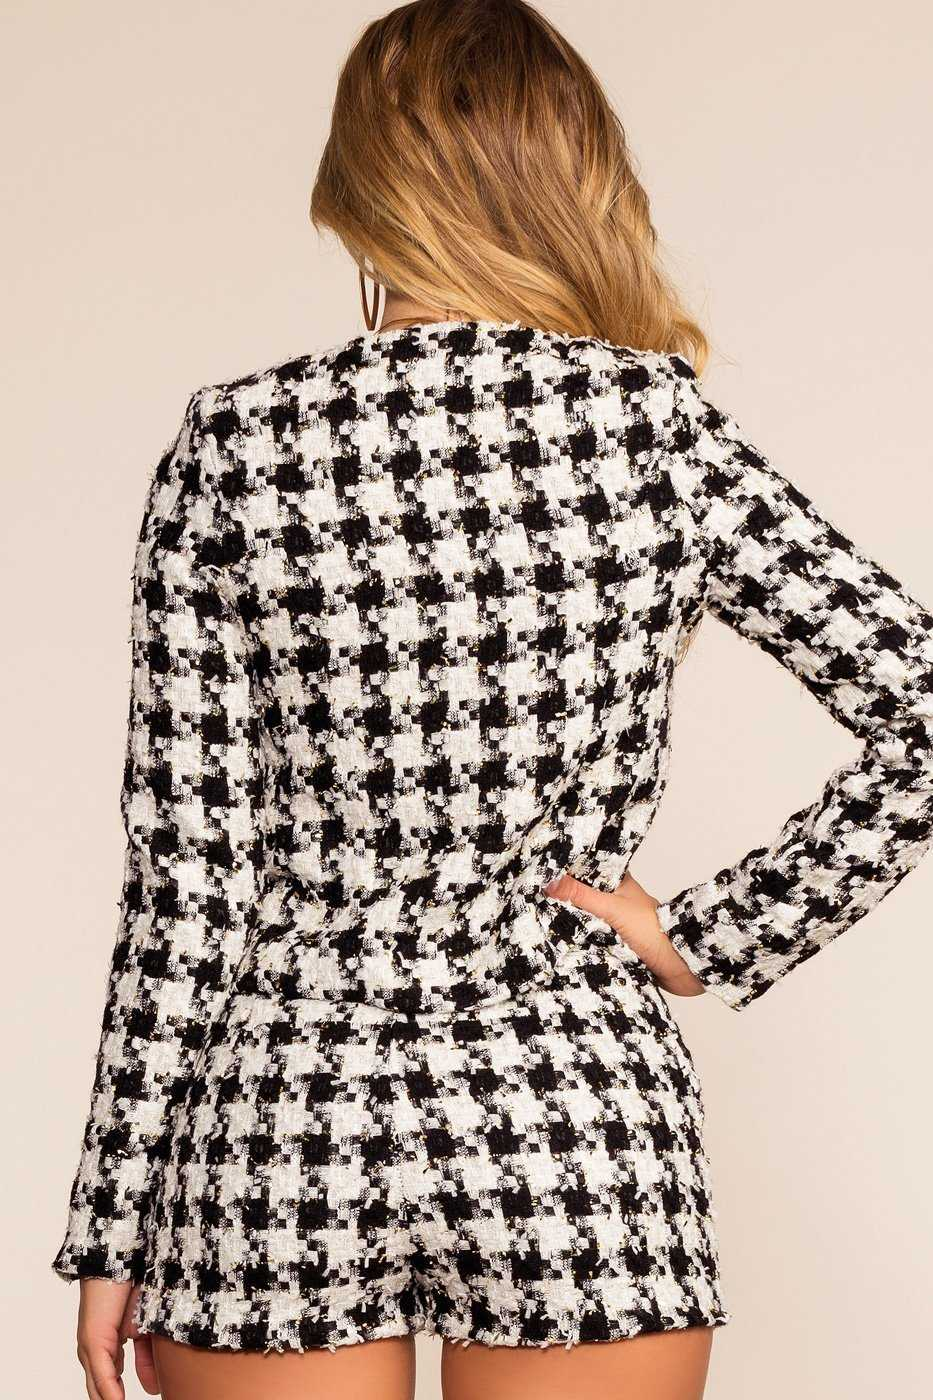 Jackets - Felicity Houndstooth Jacket